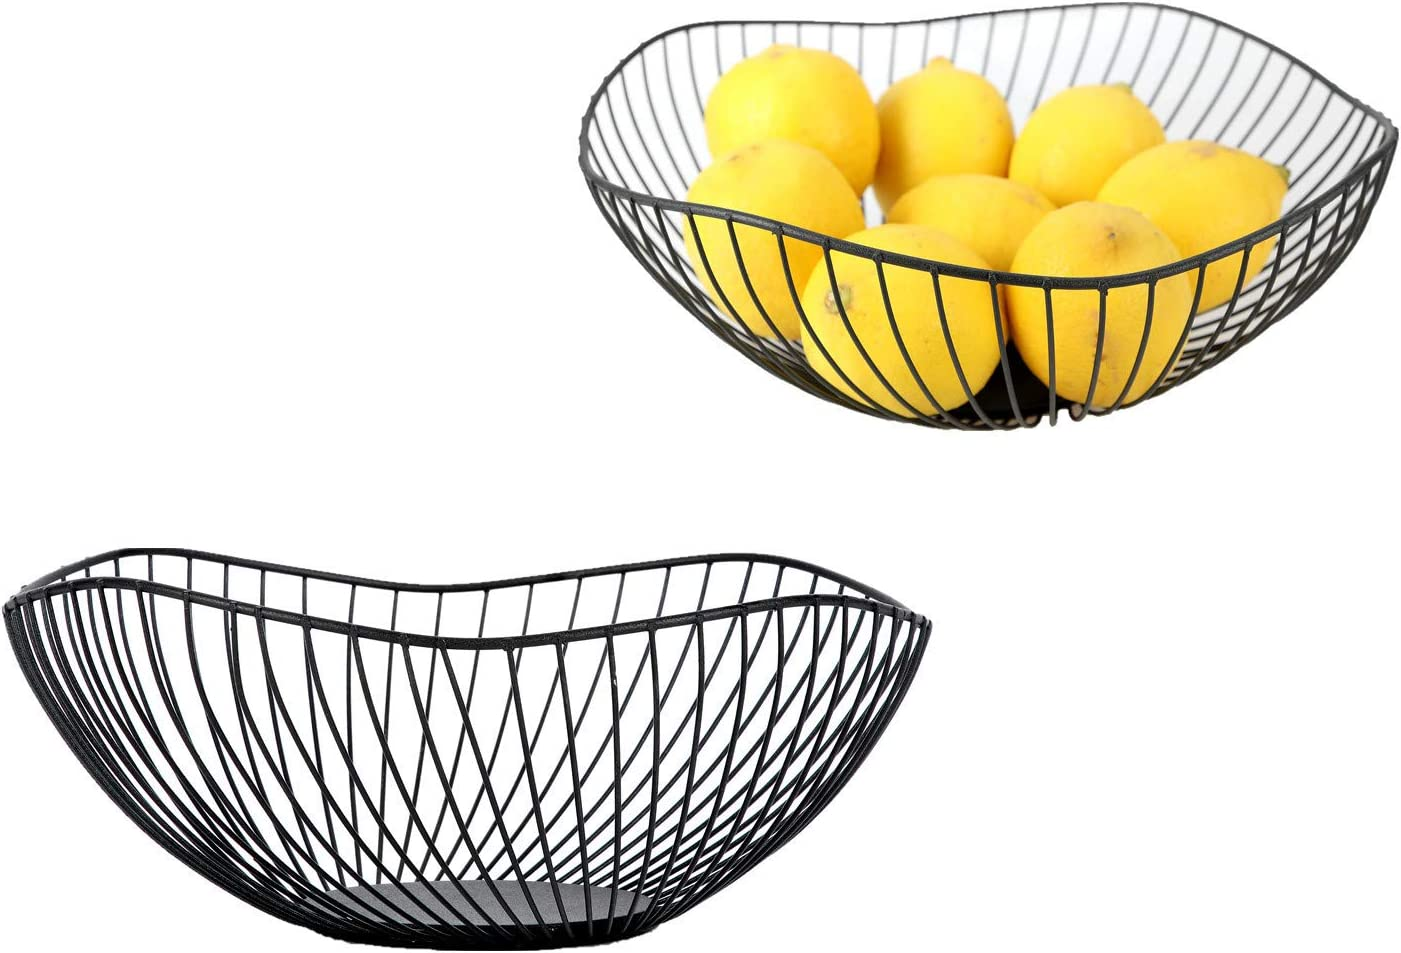 IEEK Black Fruit Bowls for the Counters Large Fruit Basket Bowl Modern Wired Wave Decorative Bowls for Centerpieces Kitchen Vegetables Bowl for Fruit ,Vegetable and Bread Storage,Fruit Bowl Anti Rust